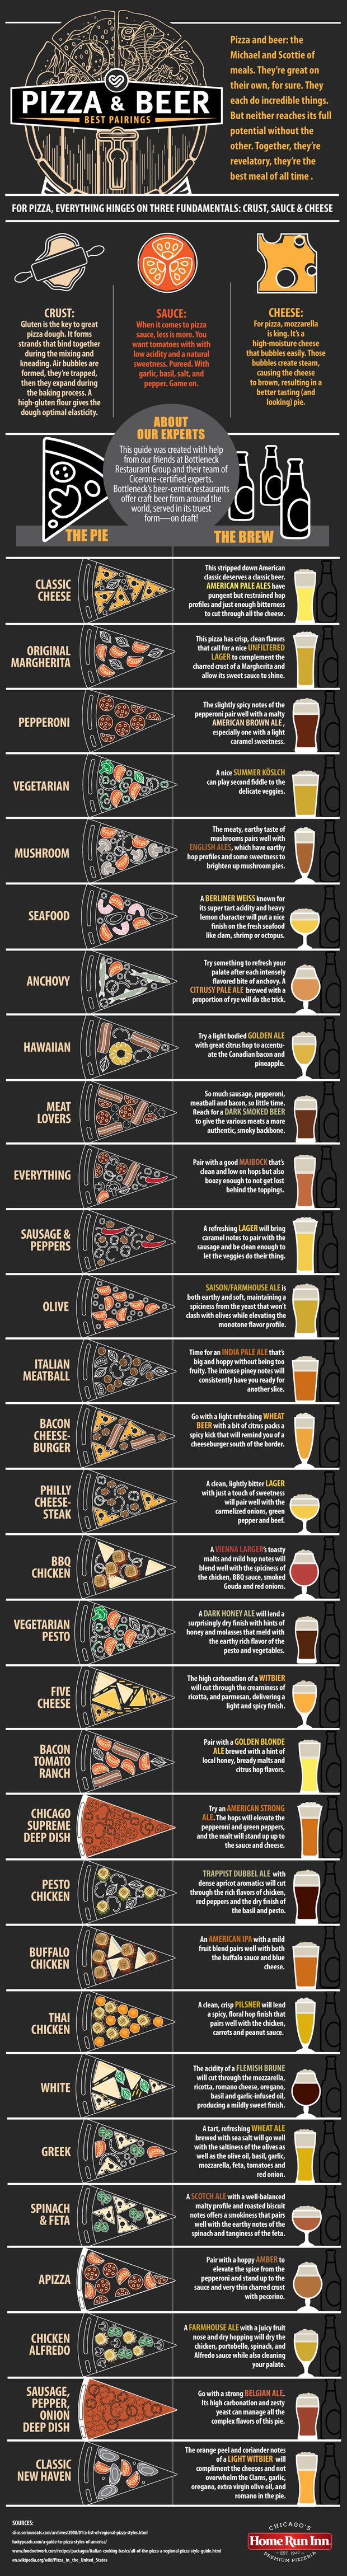 A Guide to Perfect Beer and Pizza Pairings